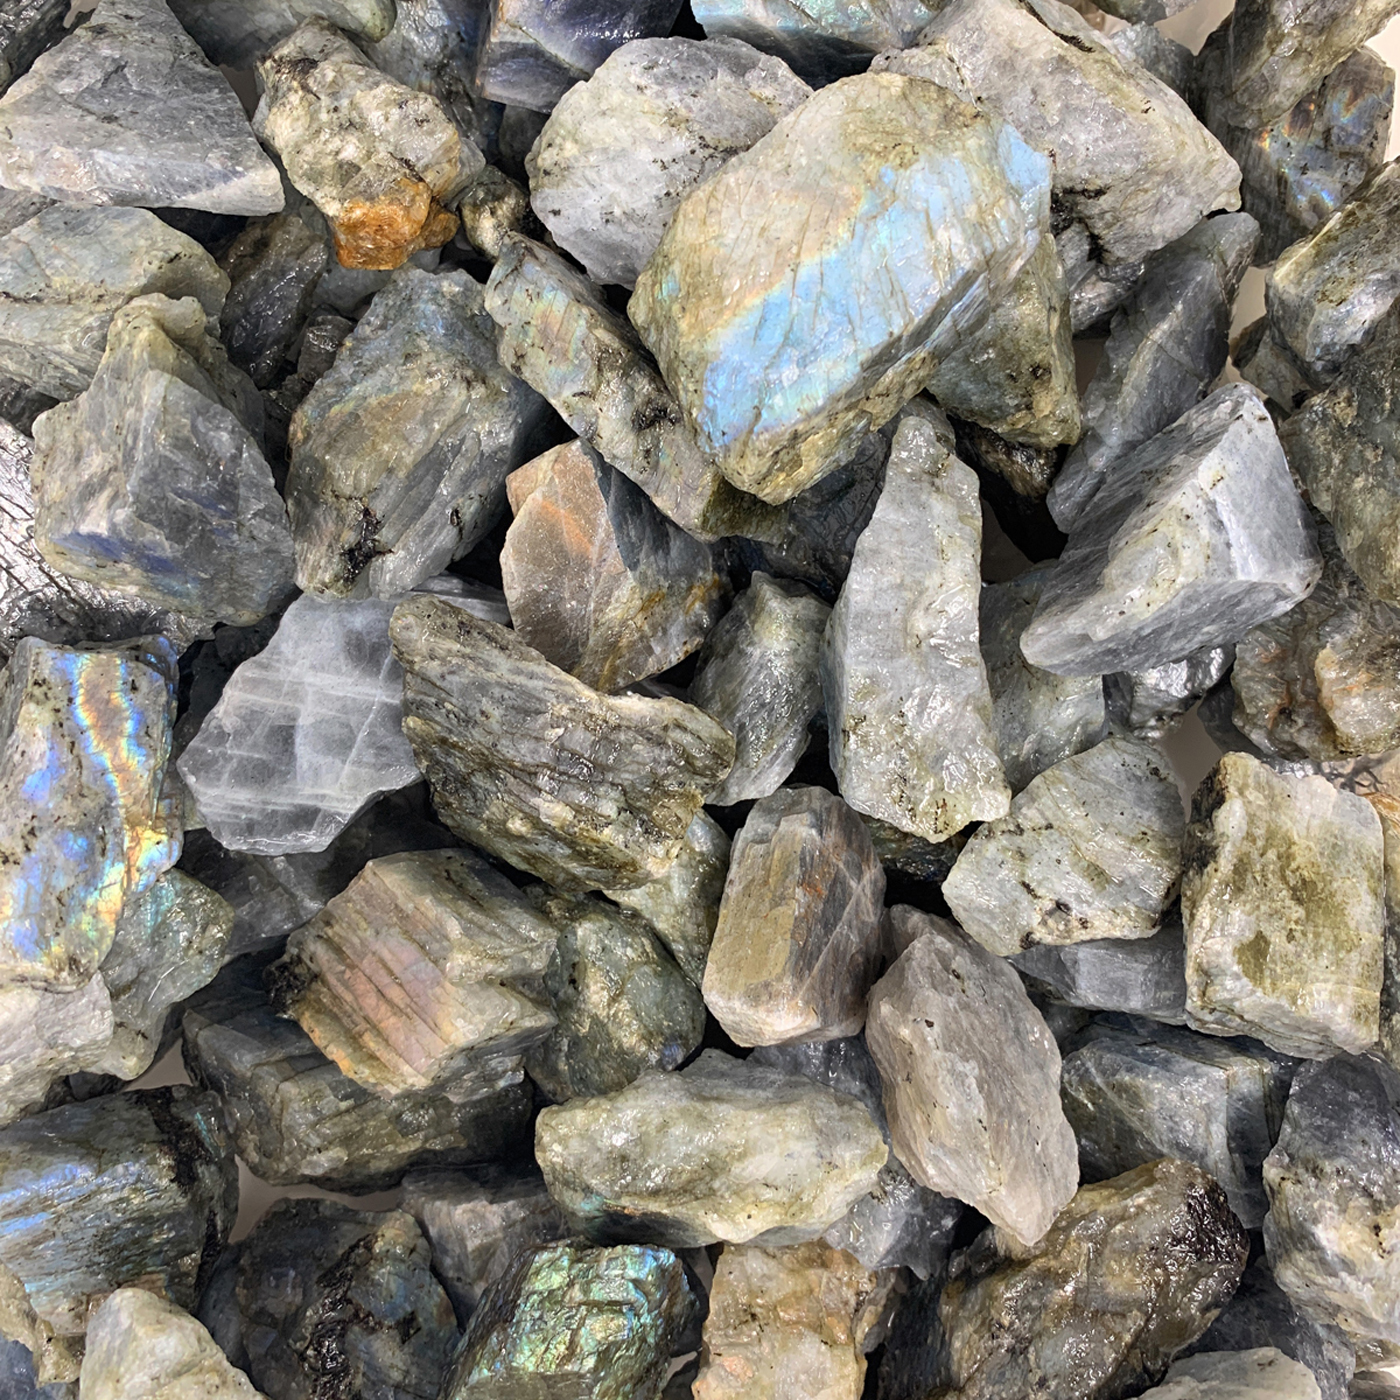 WireJewelry 3 lbs of Bulk Rough Labradorite Stone - Large Natural Rough Stone and Crystals for Tumbling